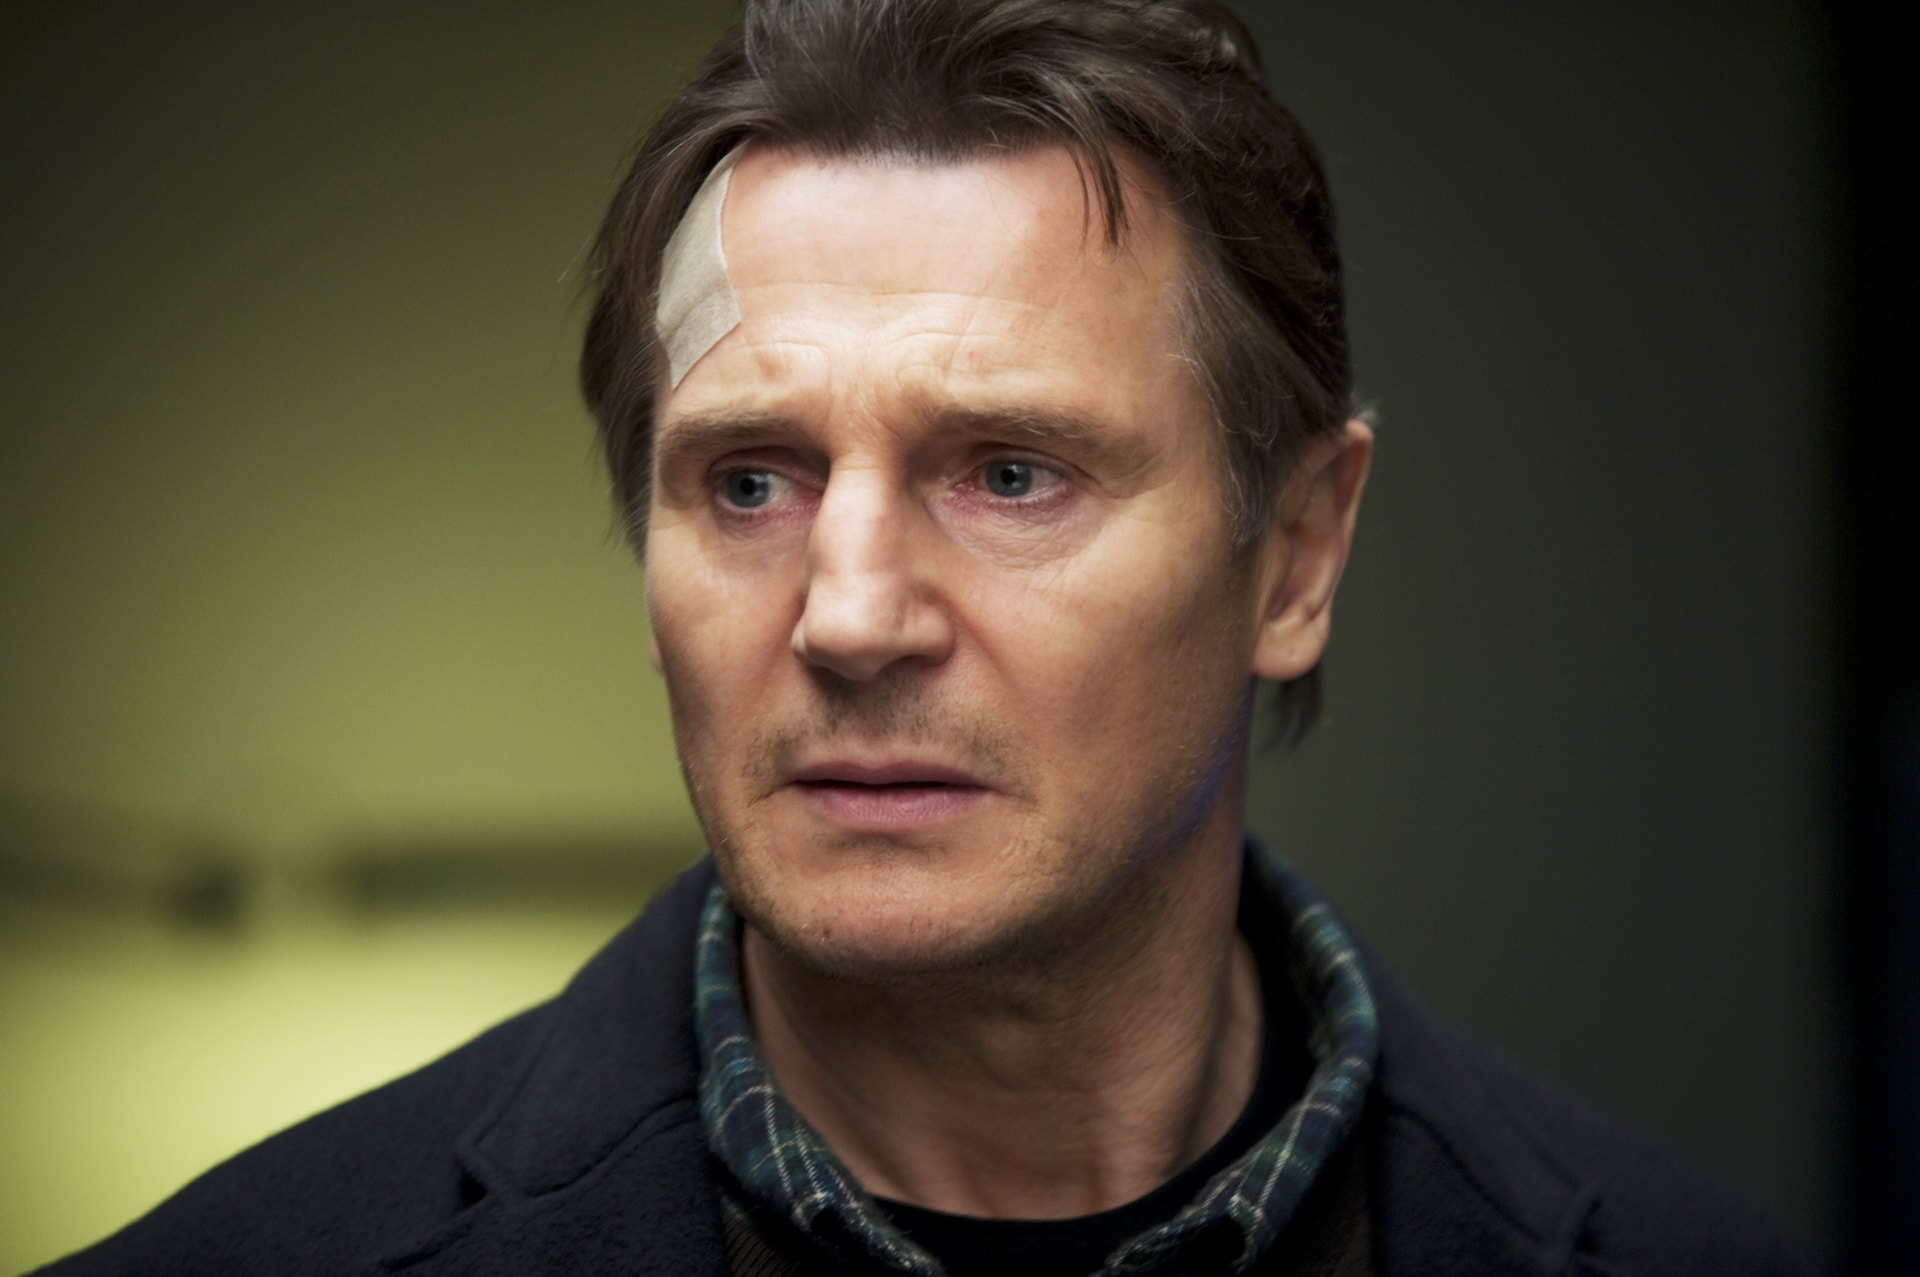 Liam Neeson HQ wallpapers